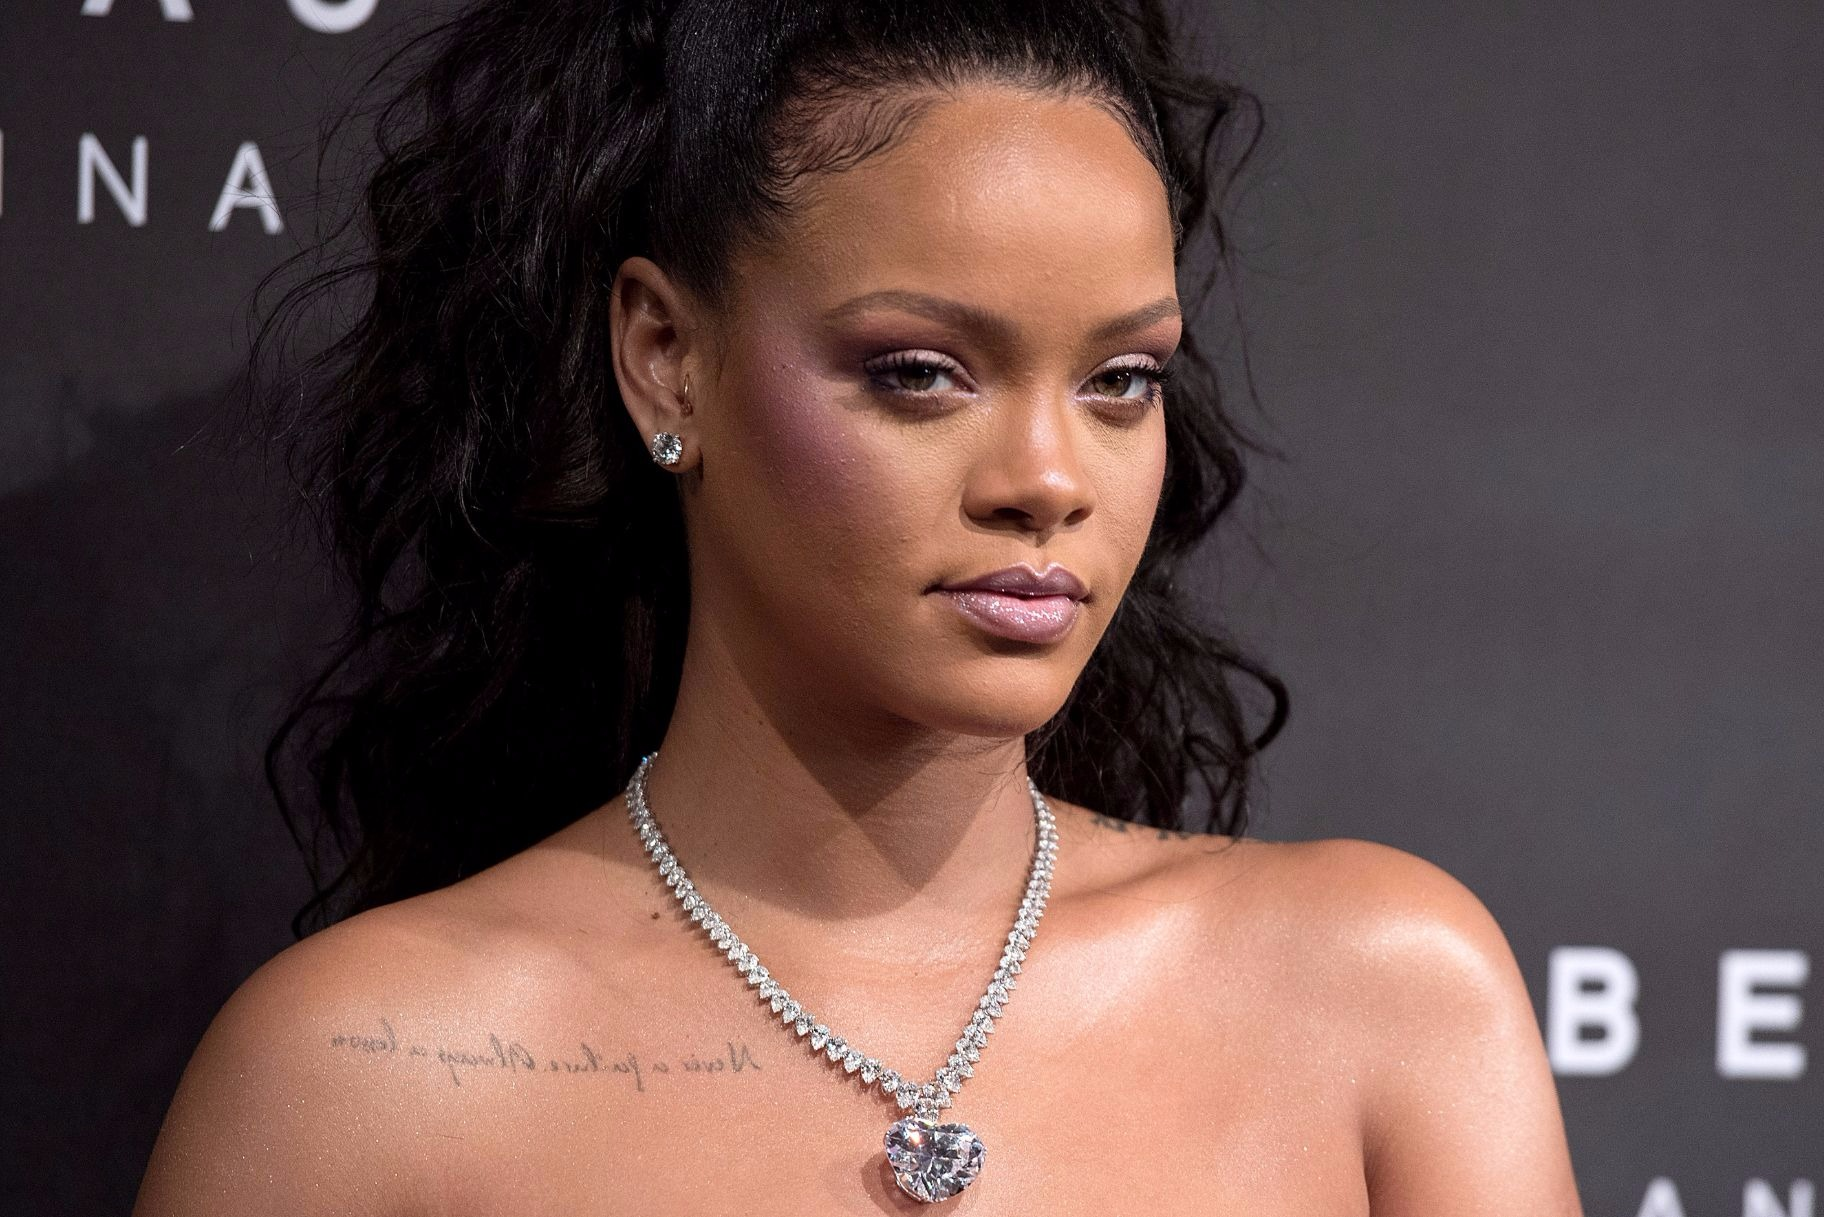 Rihanna: Rihanna Had The Best Reaction To People Not Knowing Her